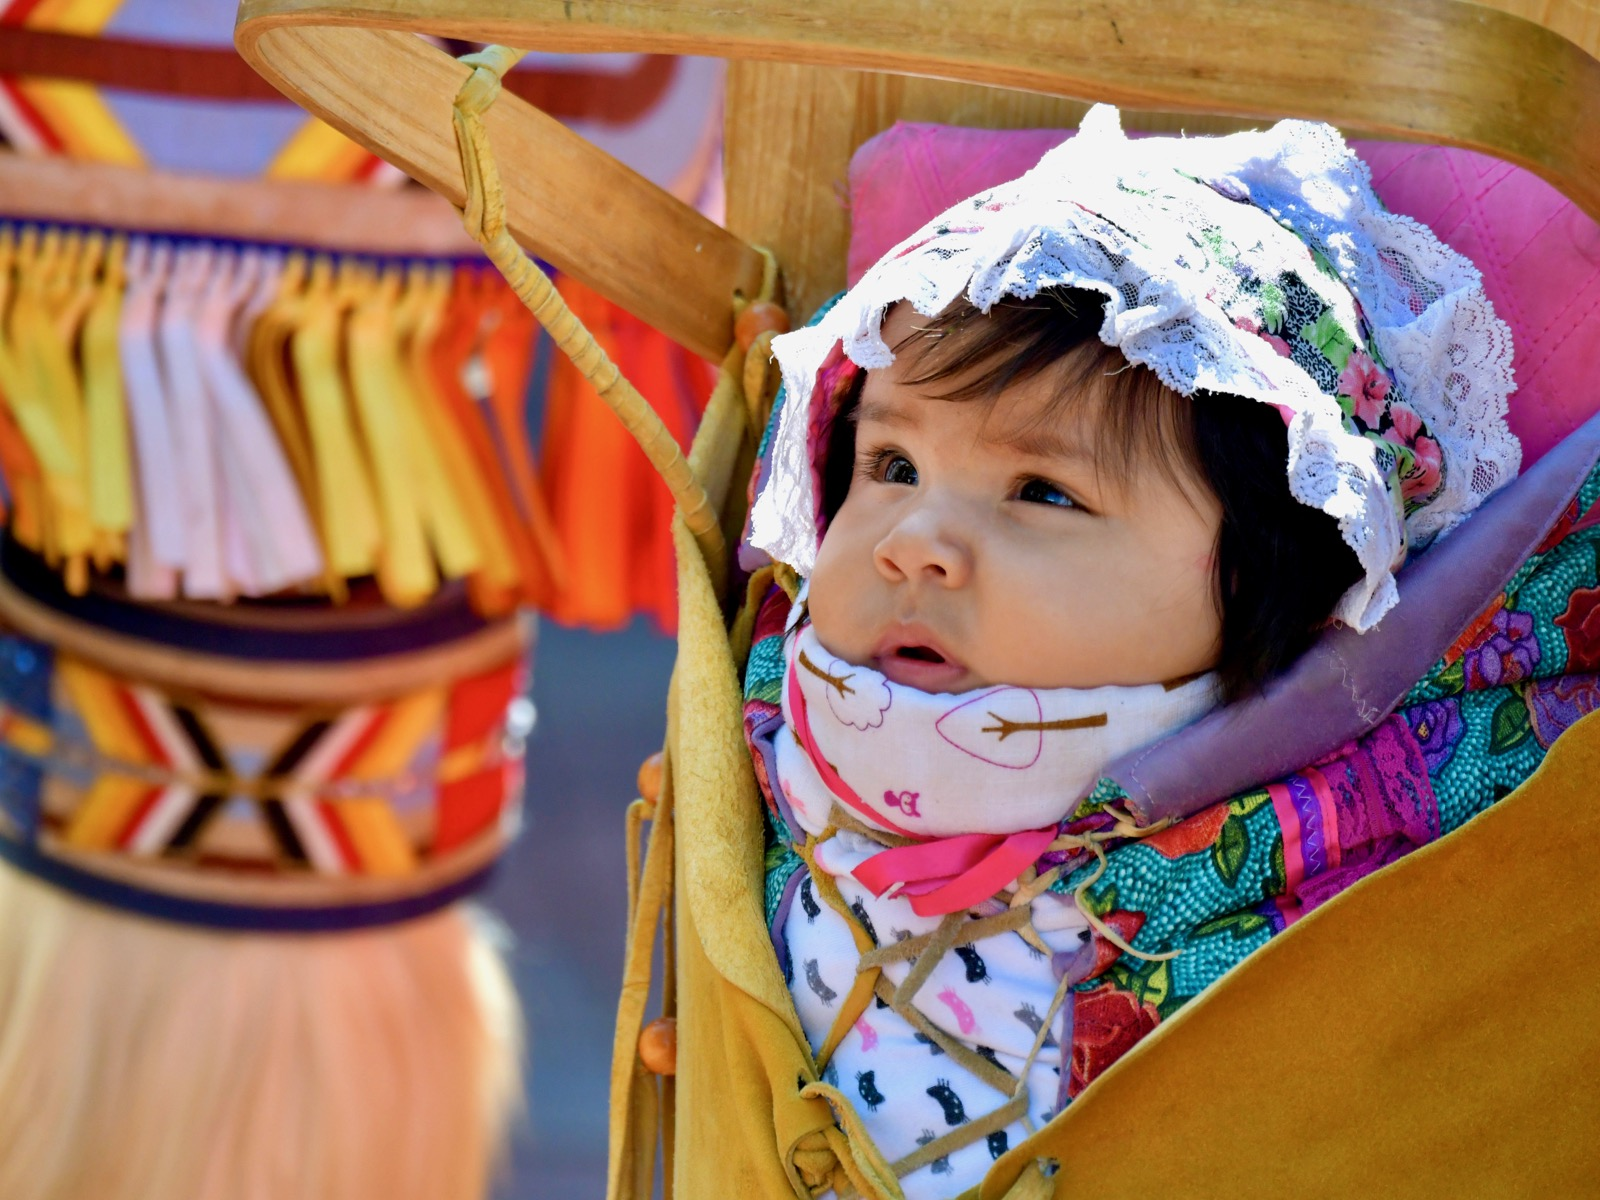 'Love is in there too': Reviving tribal traditions for newborns